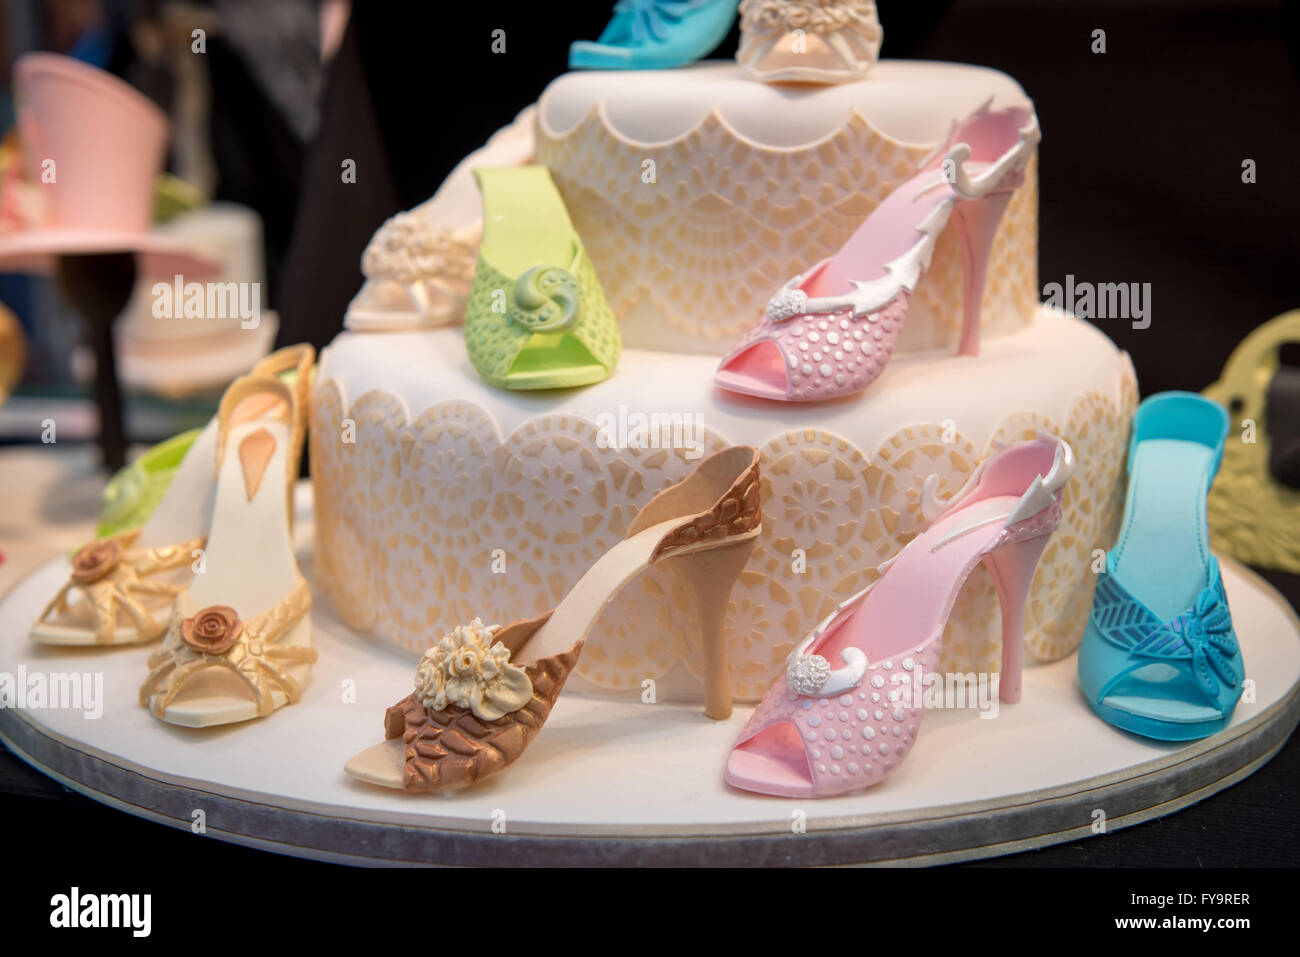 Awe Inspiring Edible High Heels Shoes Birthday Cake Decor At Cake International Birthday Cards Printable Opercafe Filternl